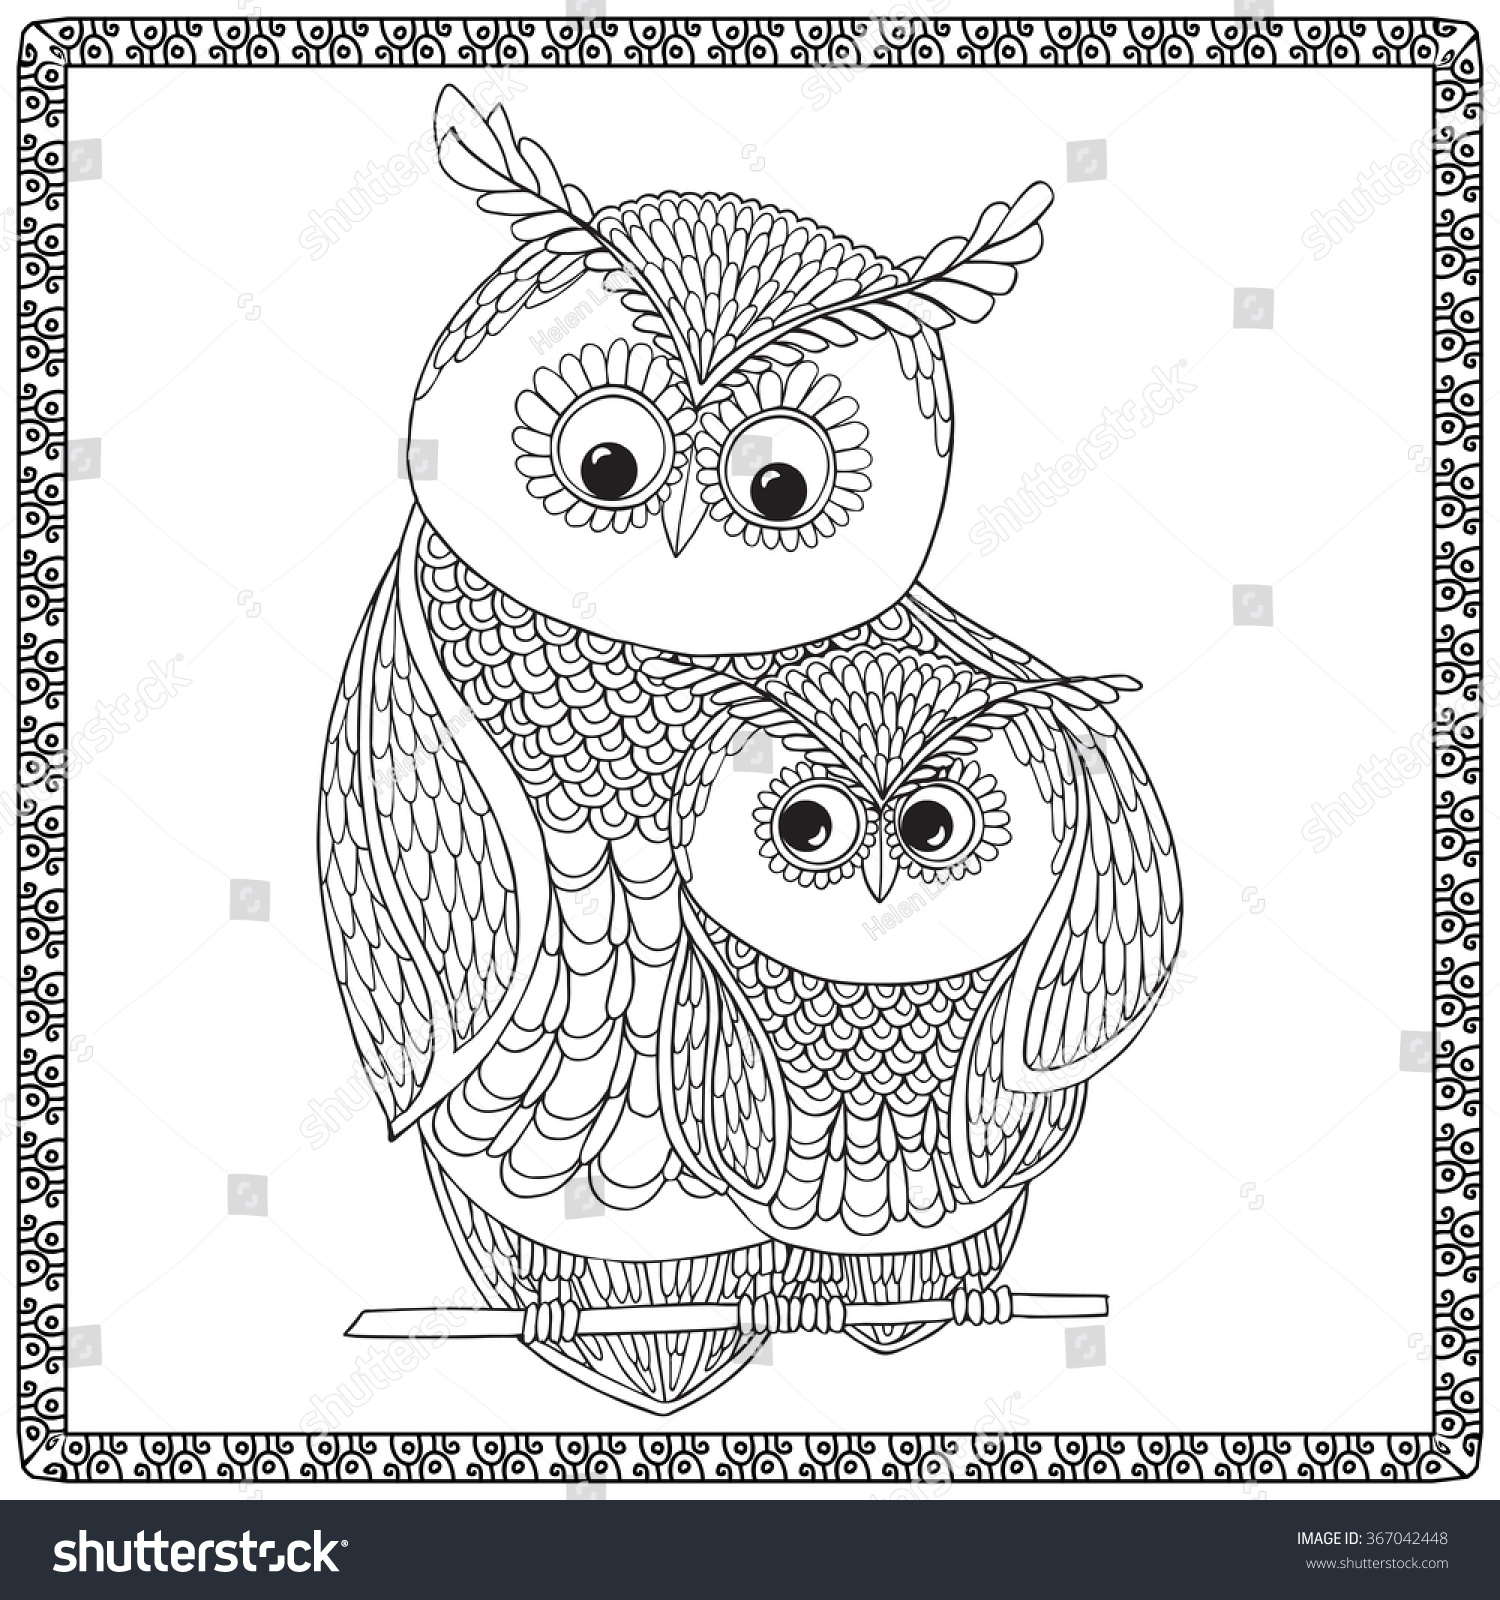 Coloring Book For Adult And Older Children Page With Cute Ow Mom Chick